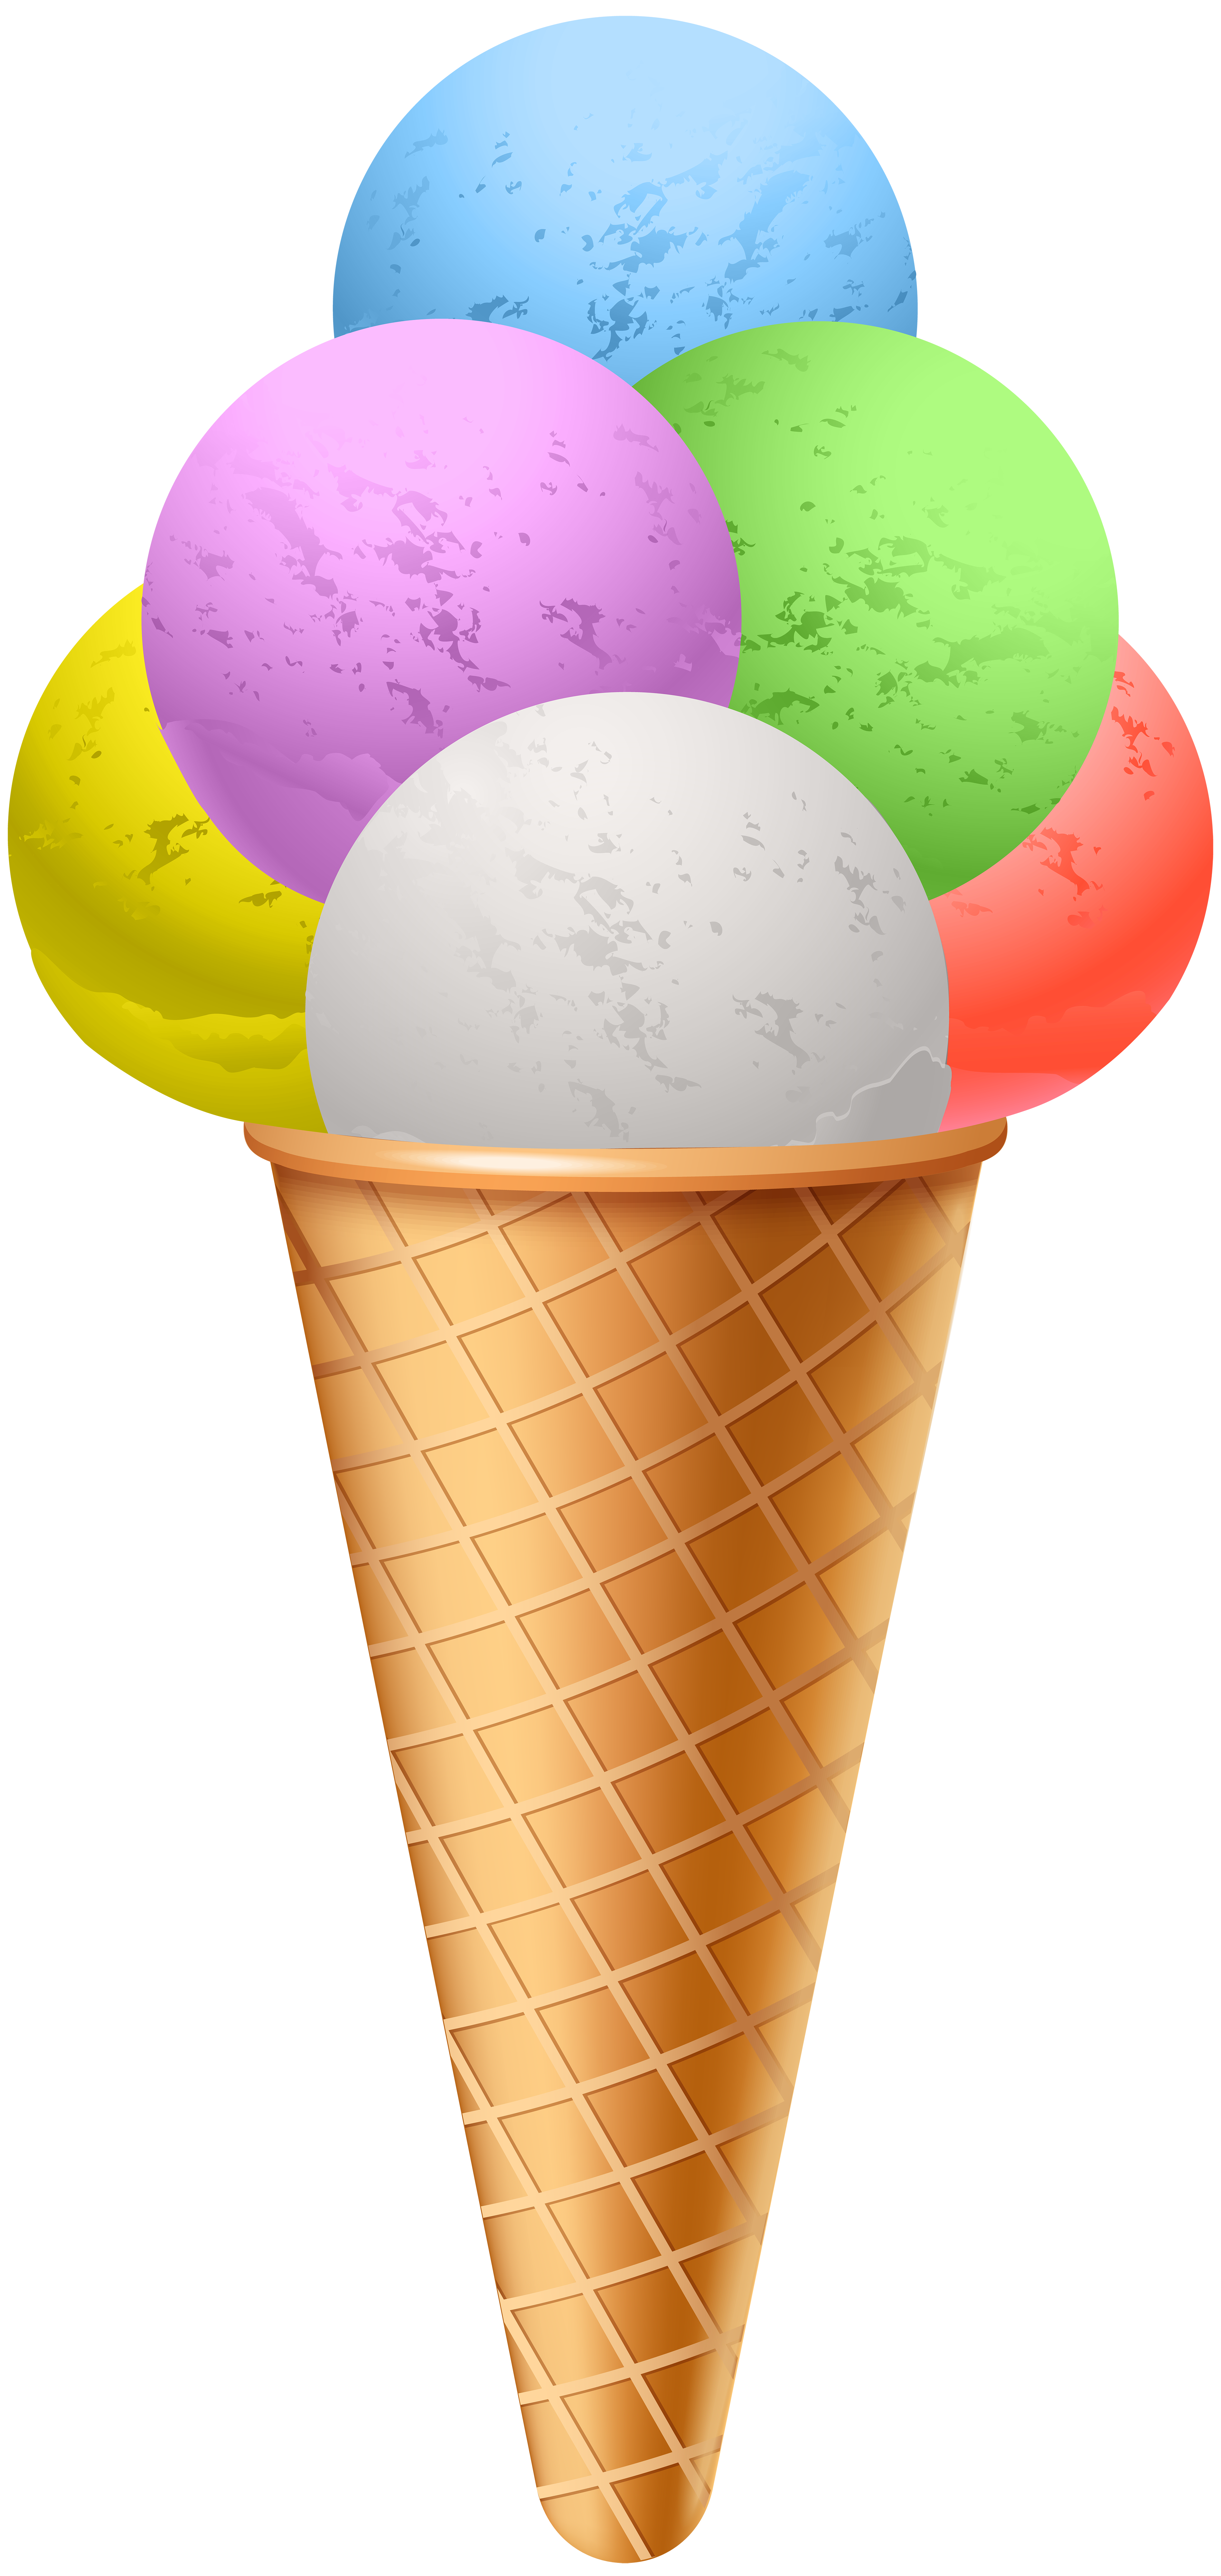 Icecream clipart valentine. Ice cream transparent png